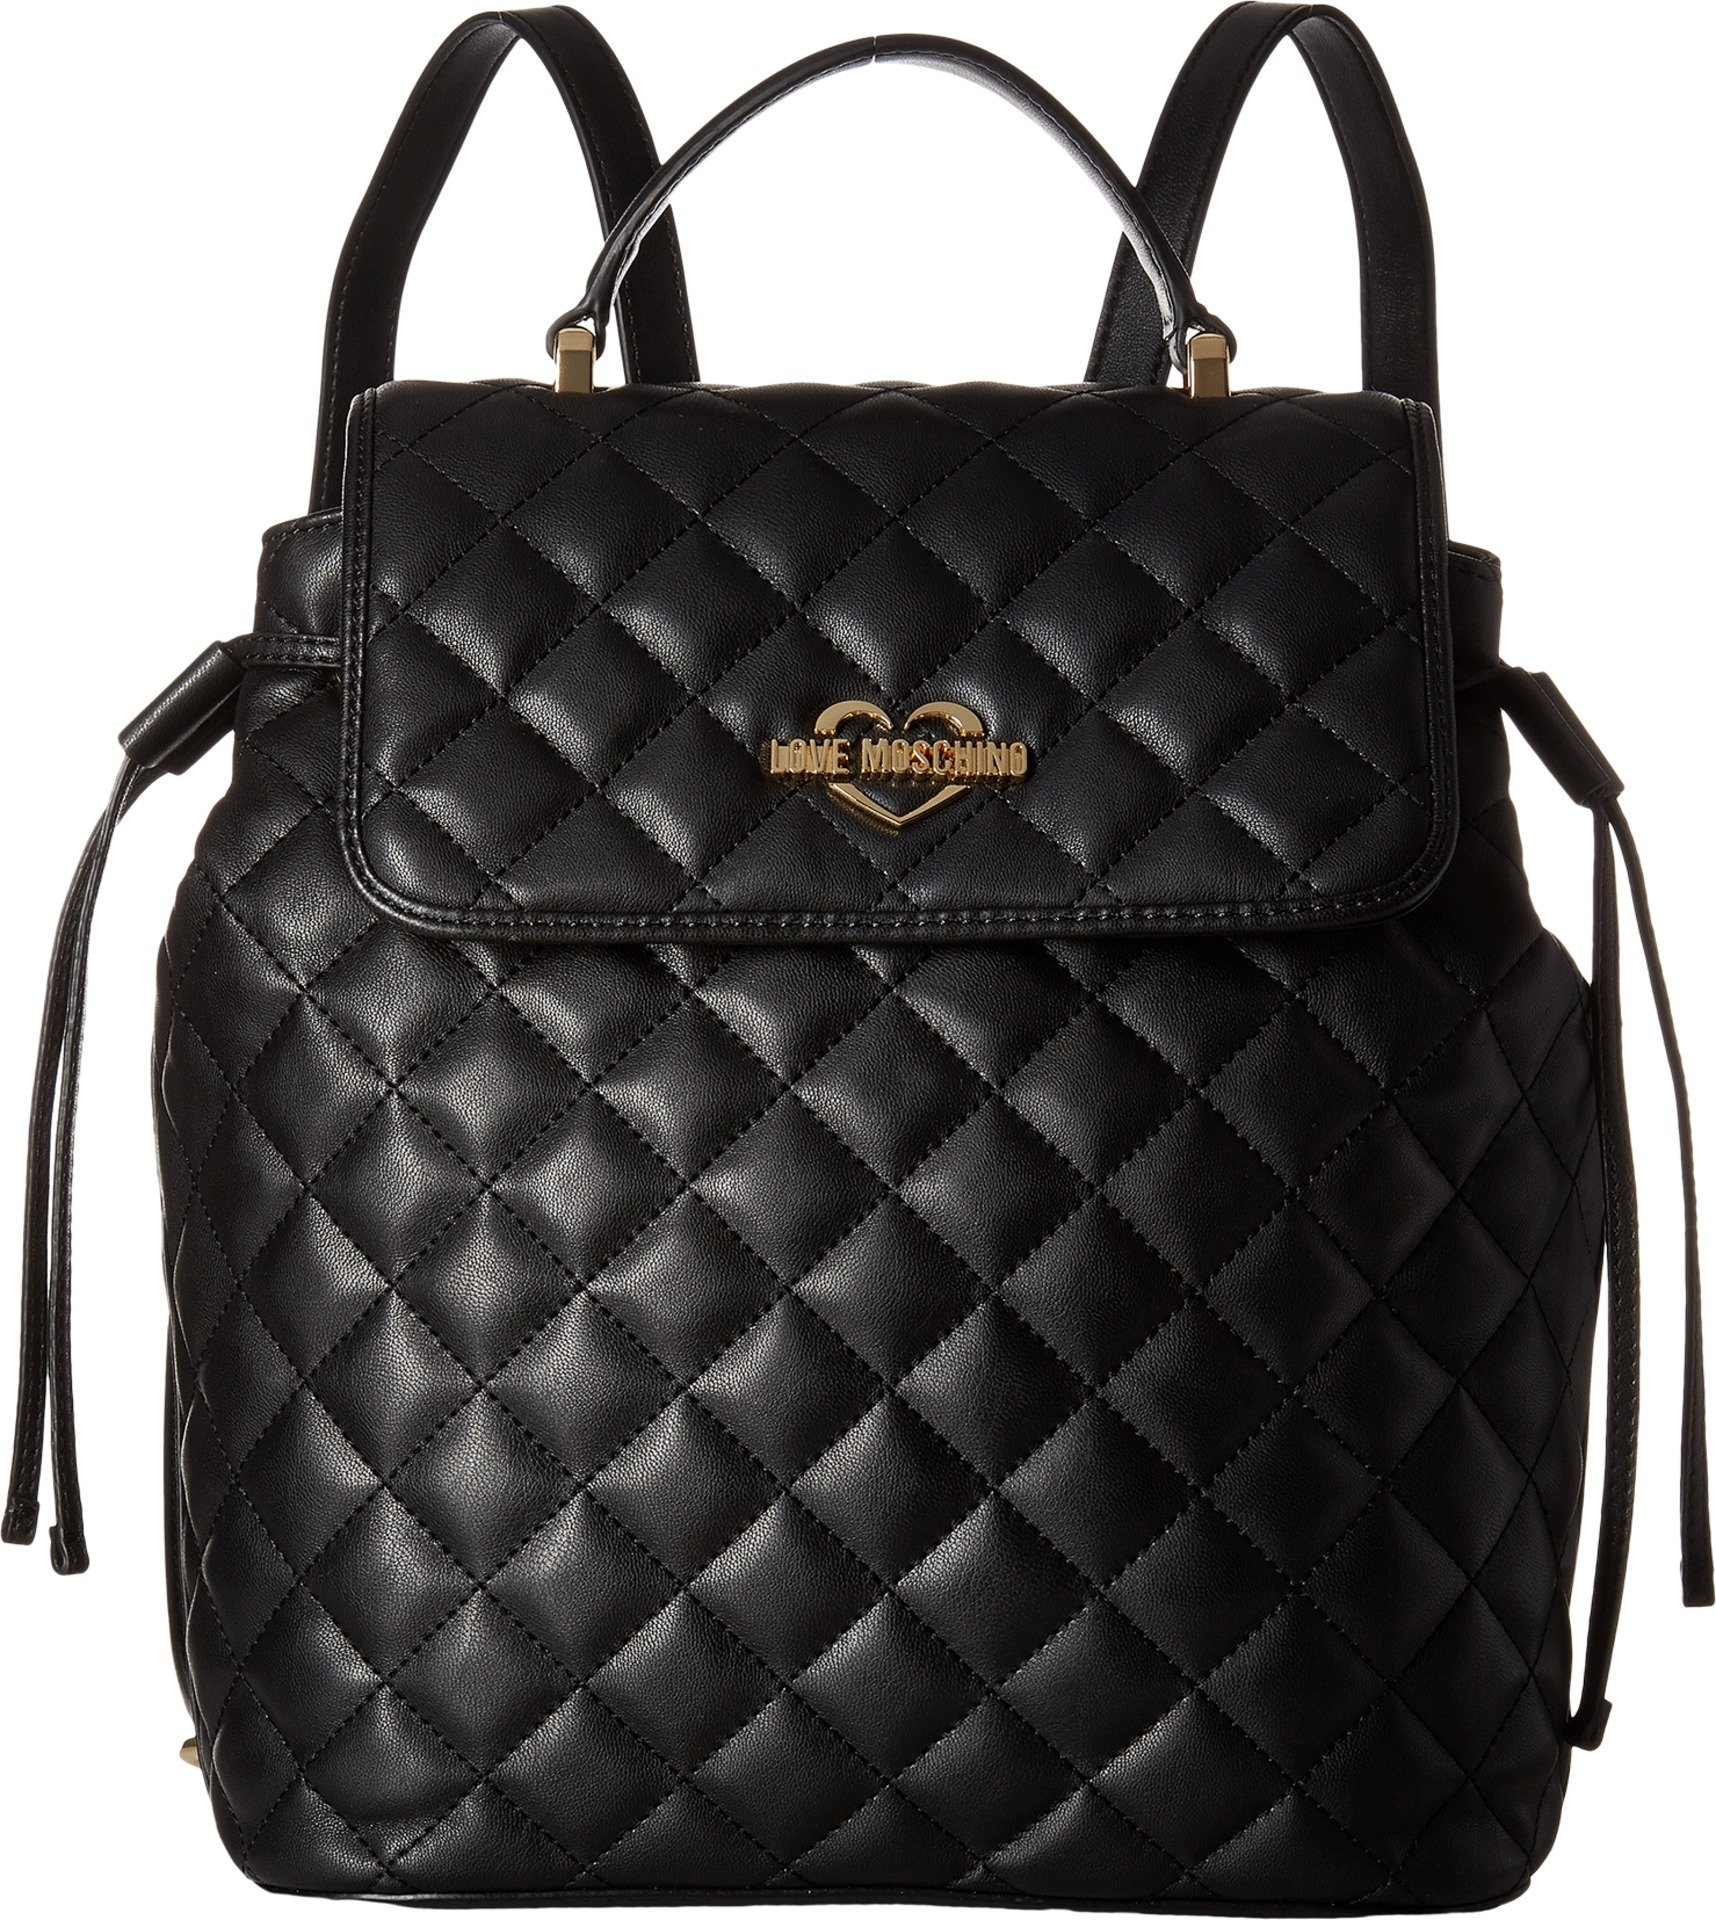 LOVE Moschino Women's Quilted Flap Backpack Black Backpack